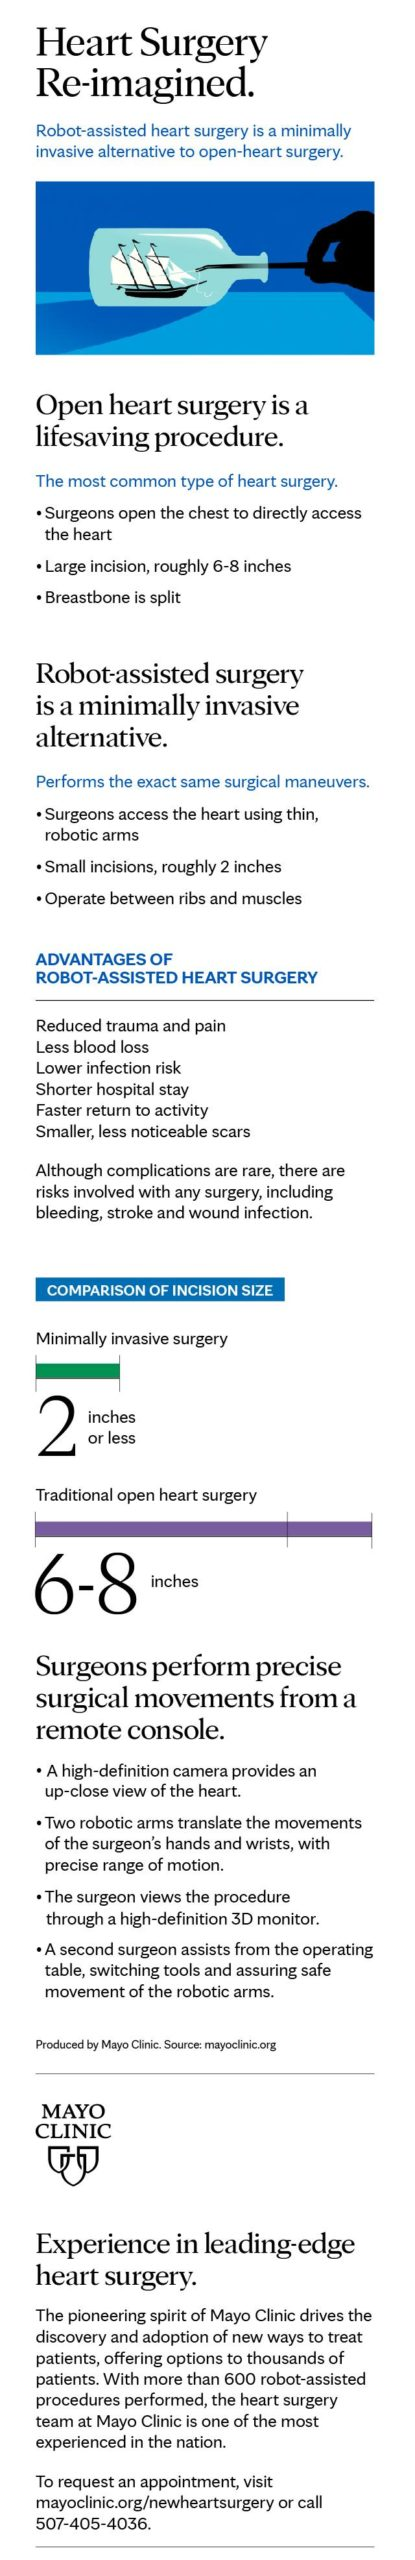 infographic:-robot-assisted-heart-surgery